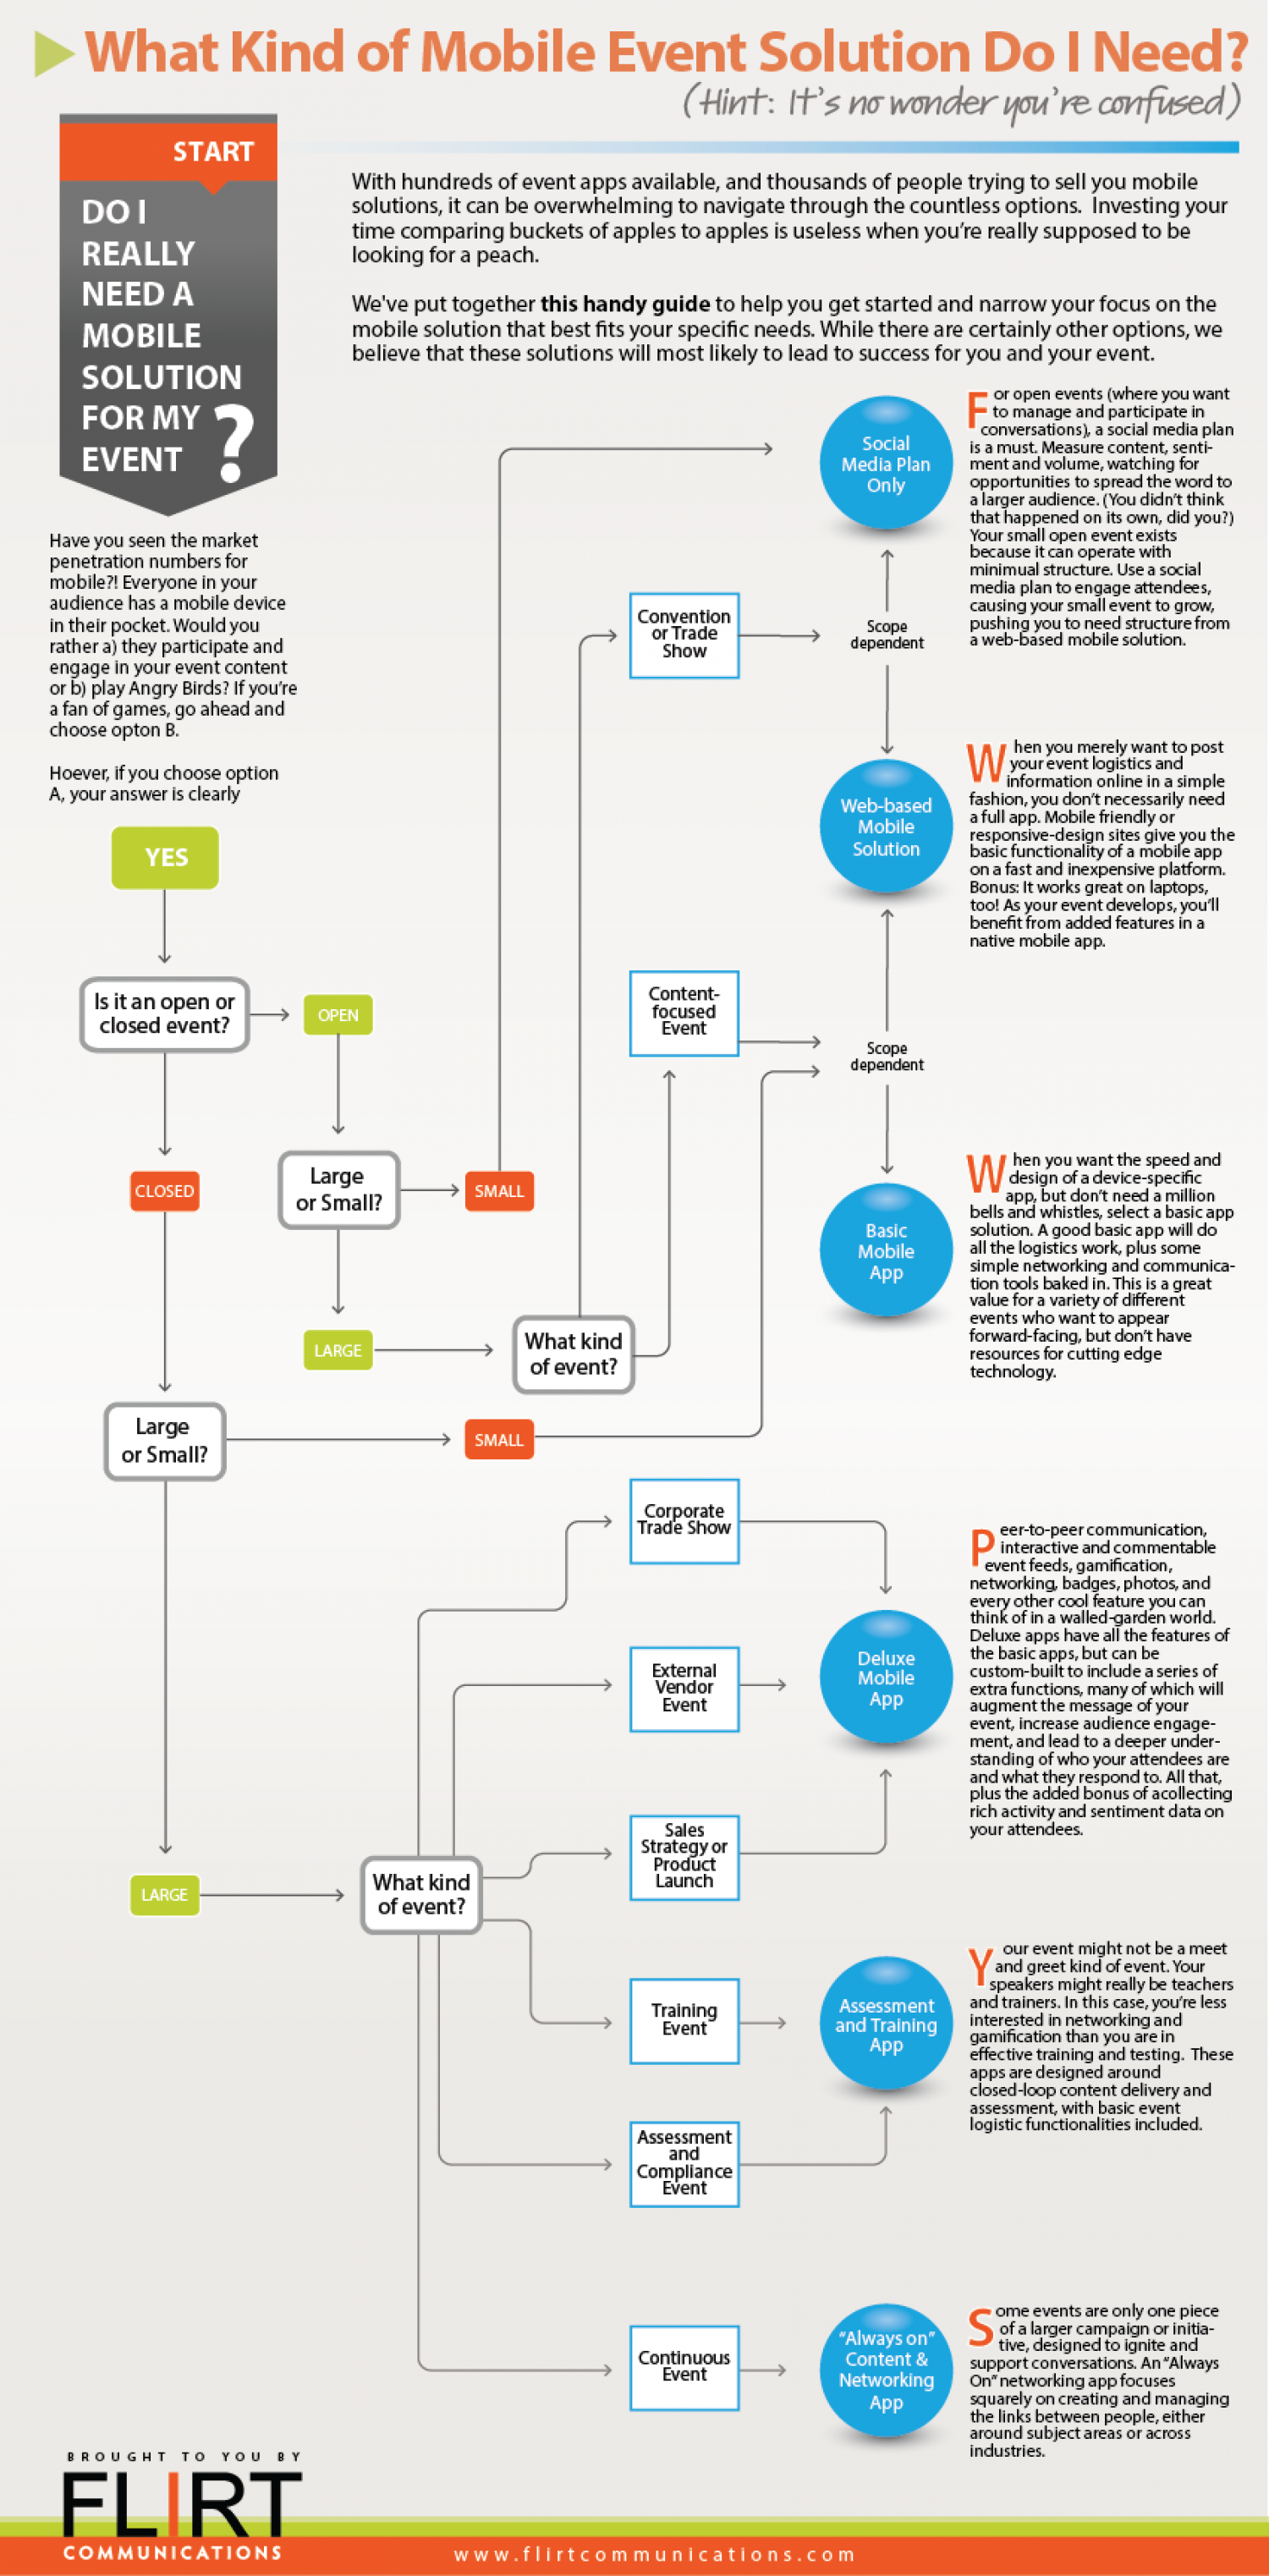 What Kind of Mobile Event Solution Do I Need? Infographic